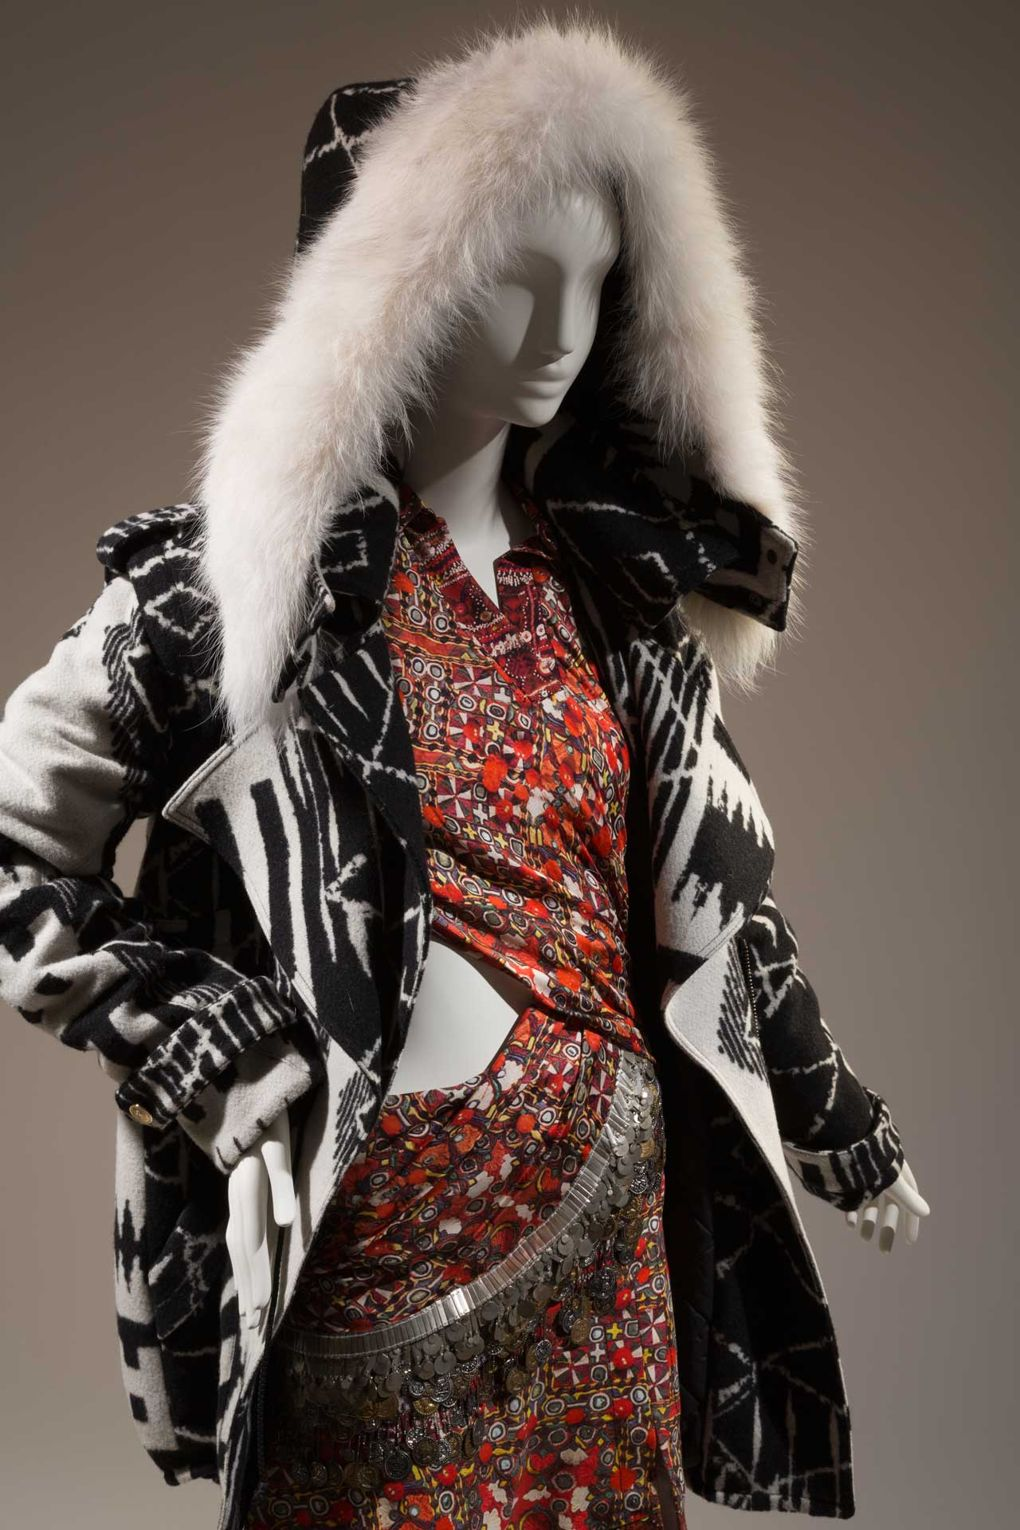 A Joseph Altuzarra parka and dress, Autumn/Winter 2012. Lent by Altuzarra